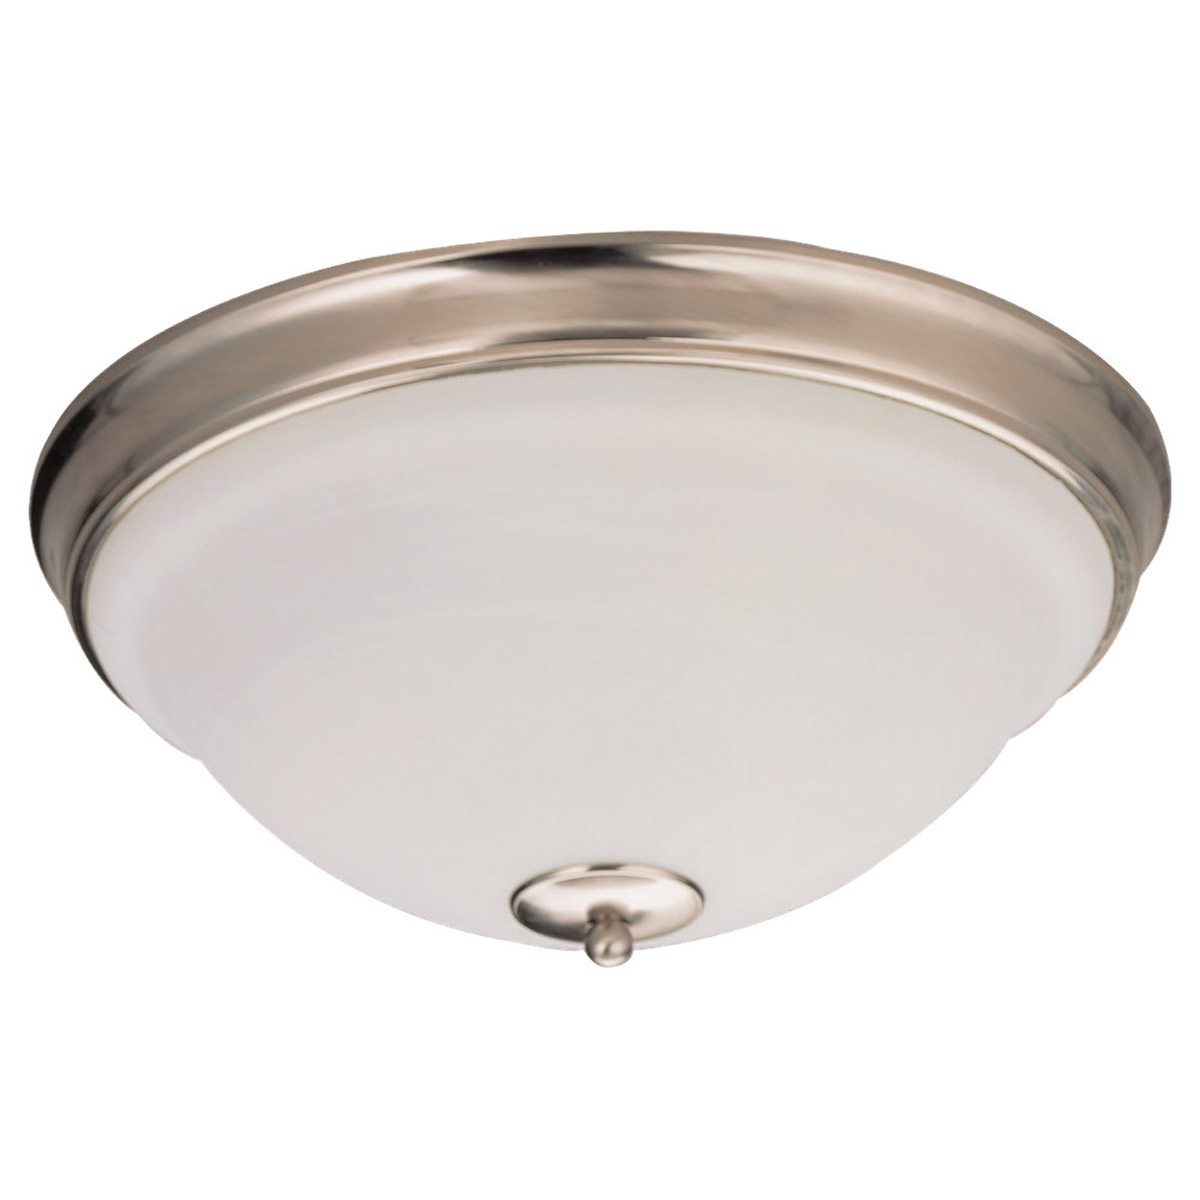 Sea Gull Lighting Serenity 3 Light Flush Mount in Brushed Nickel 79158BLE-962